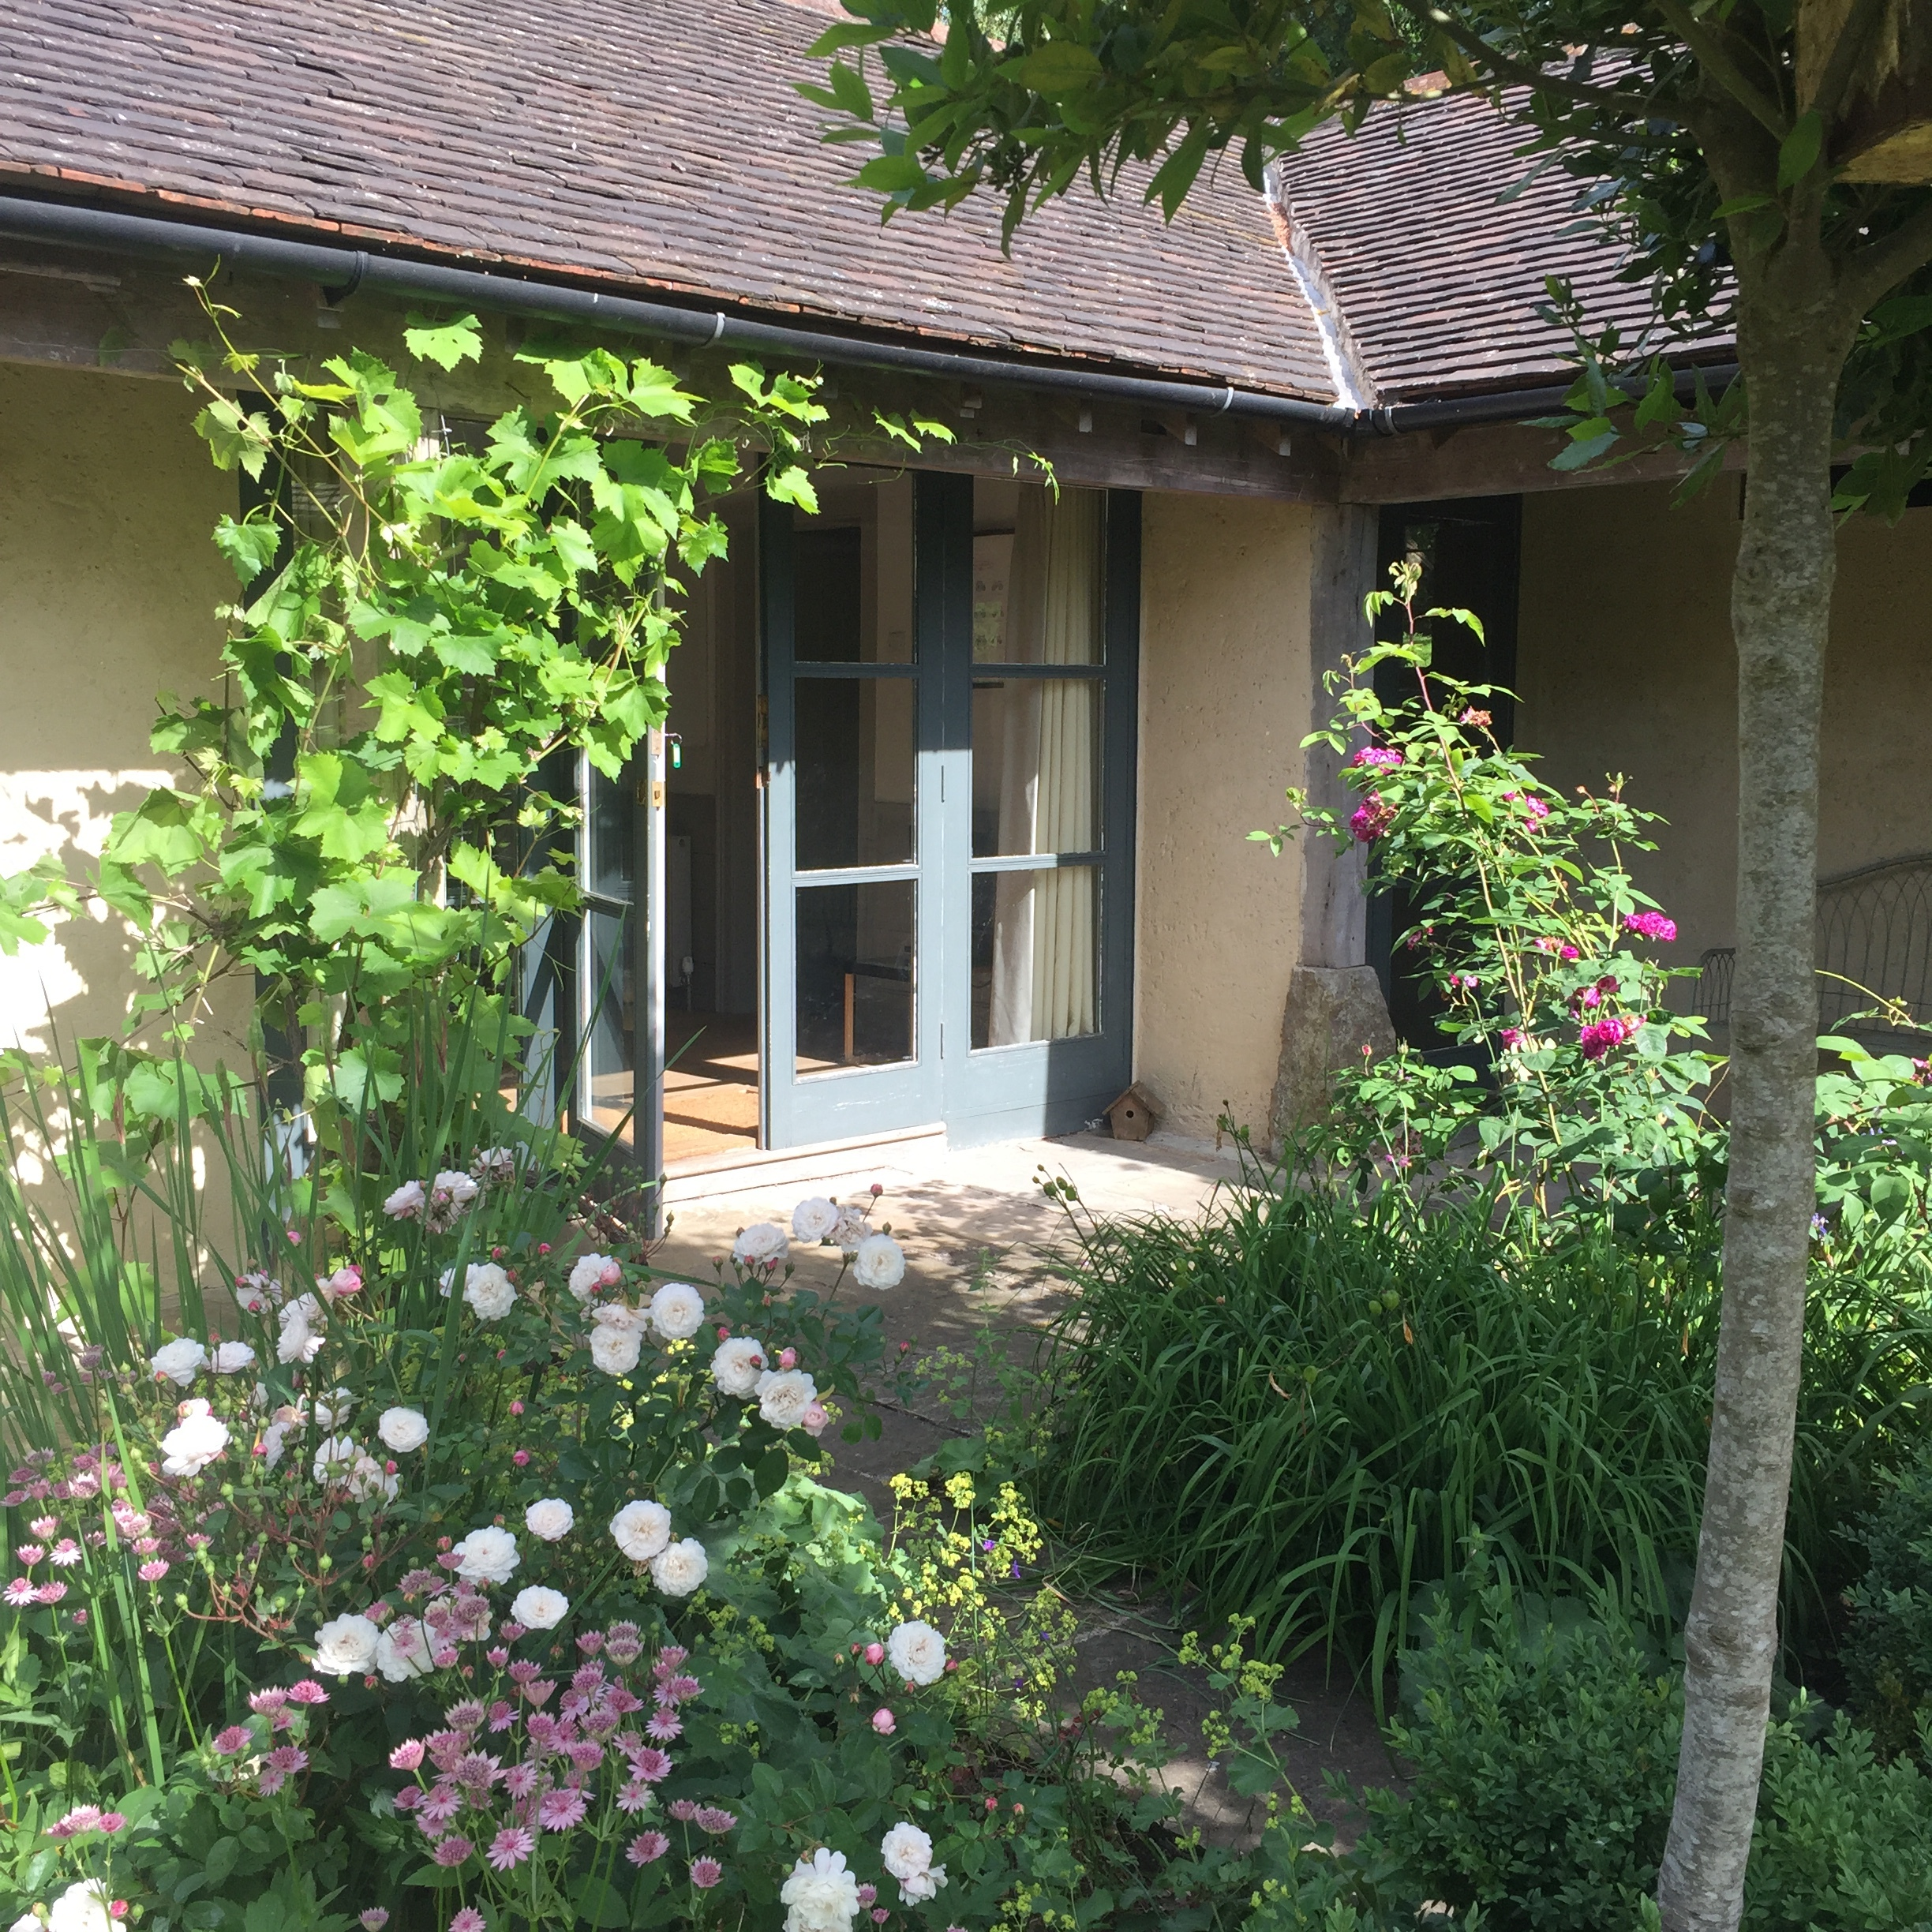 - Separate guest entrance adjacent to the main house